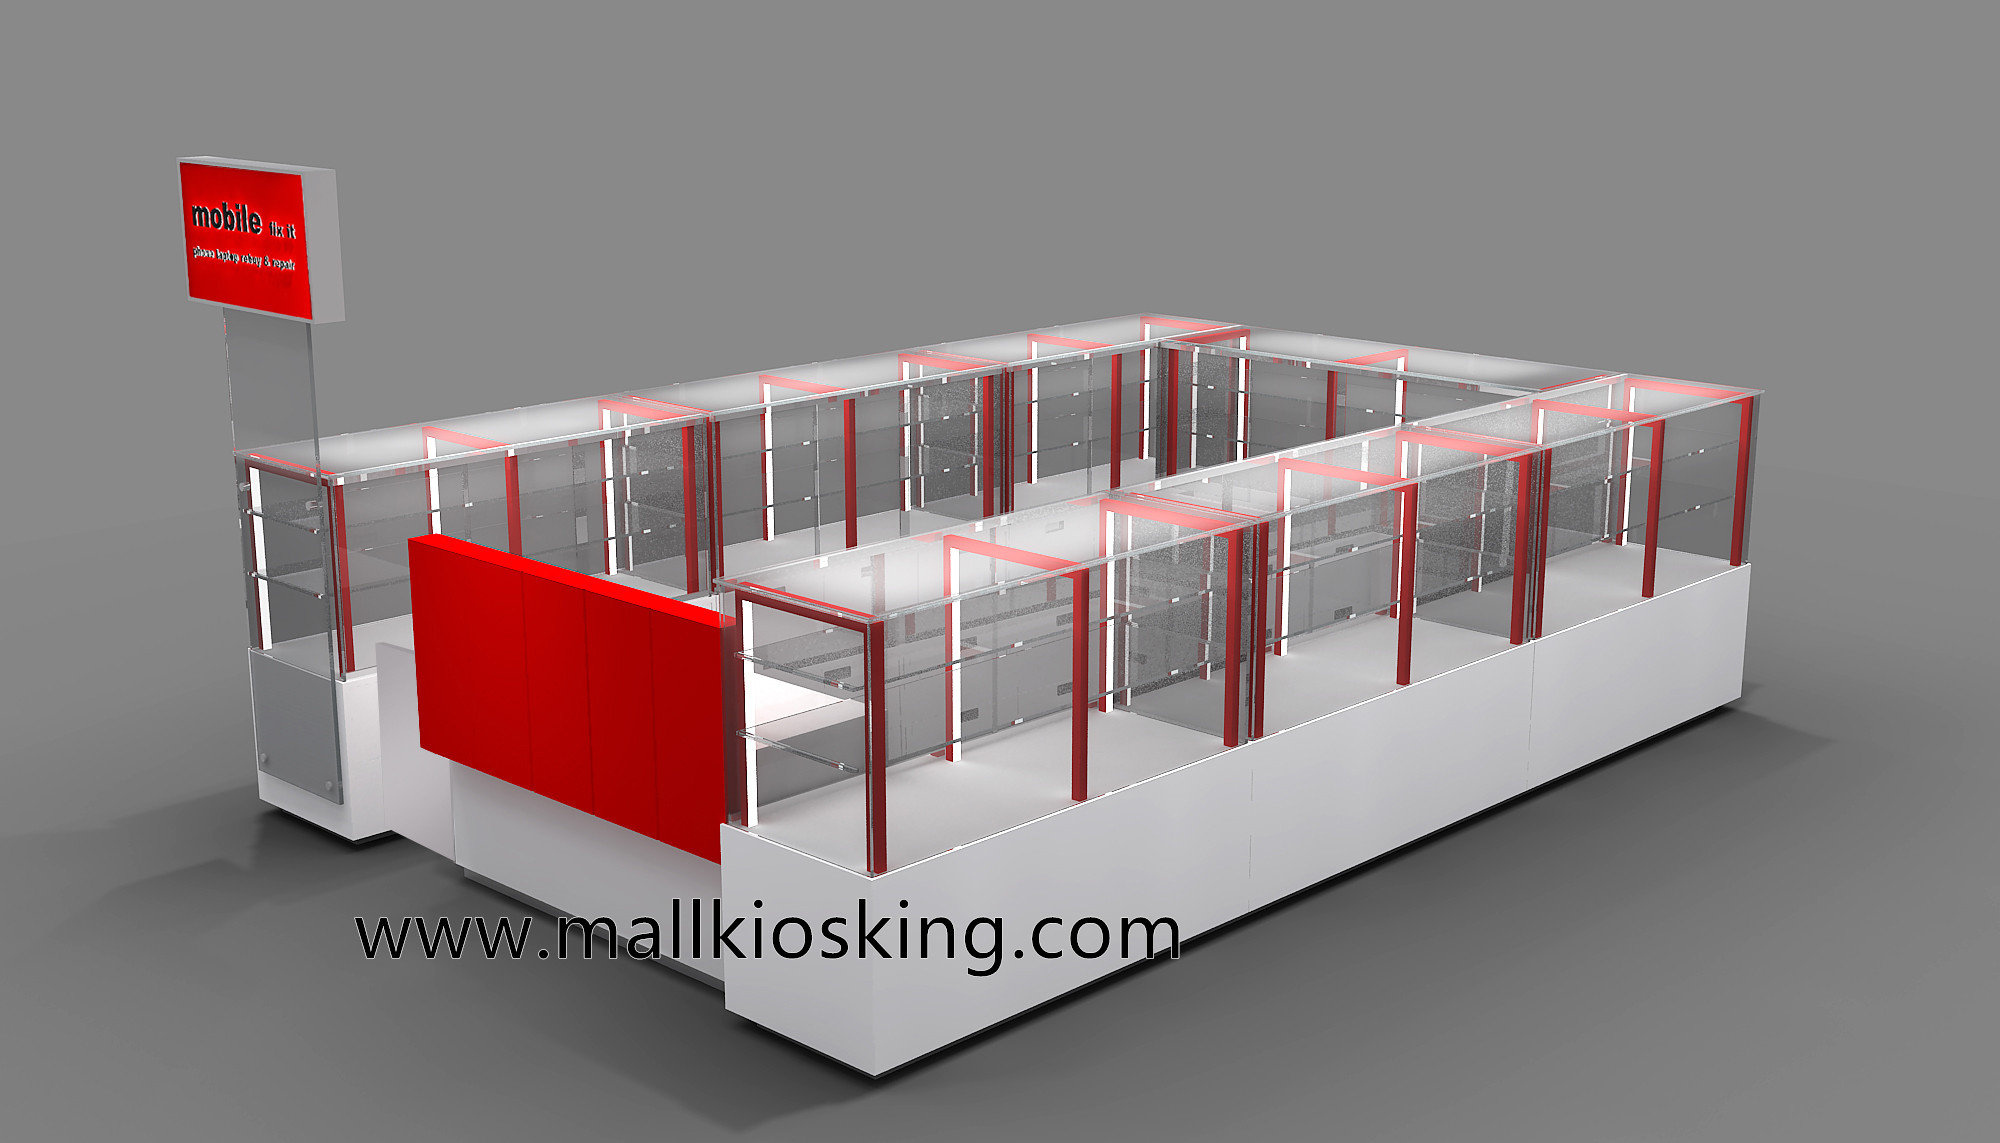 Mall retail electronic products mobile phone kiosk for sale for Mobili kios